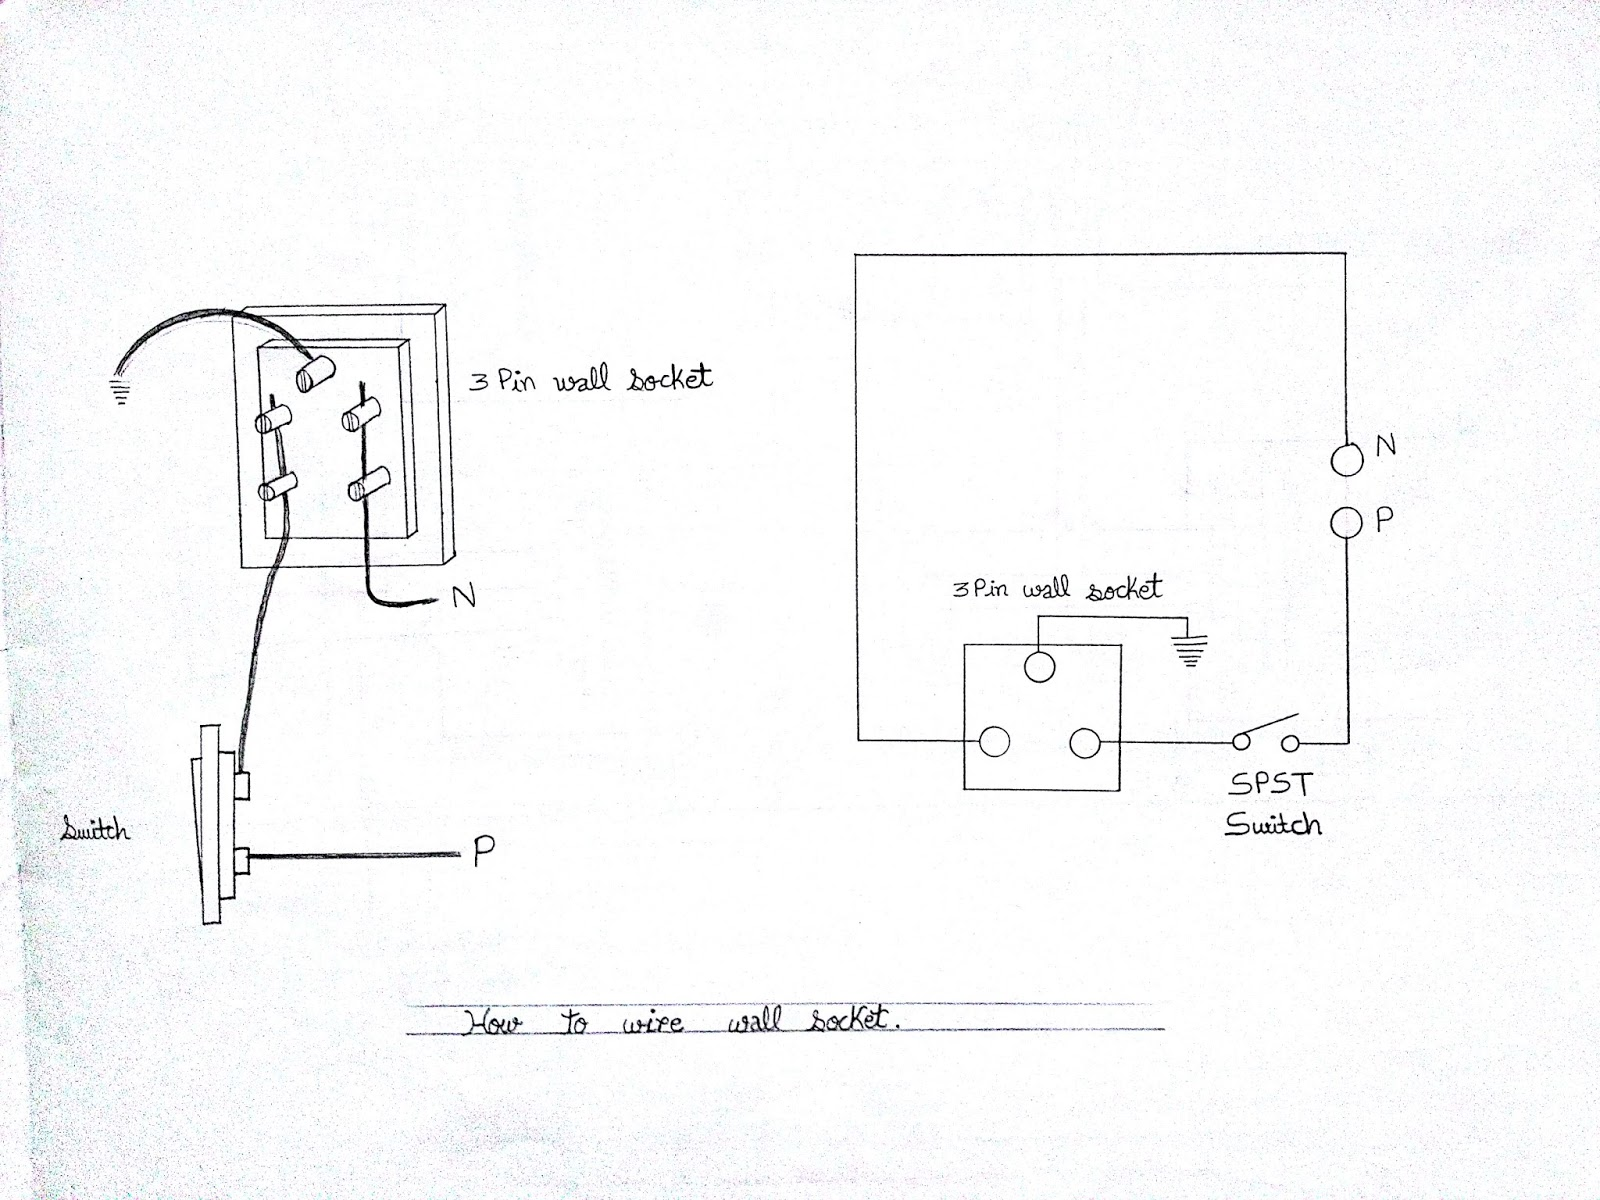 learn electrician electrical wiring diagrams of switches sockets 2 way switches wiring diagram of 1 [ 1600 x 1200 Pixel ]